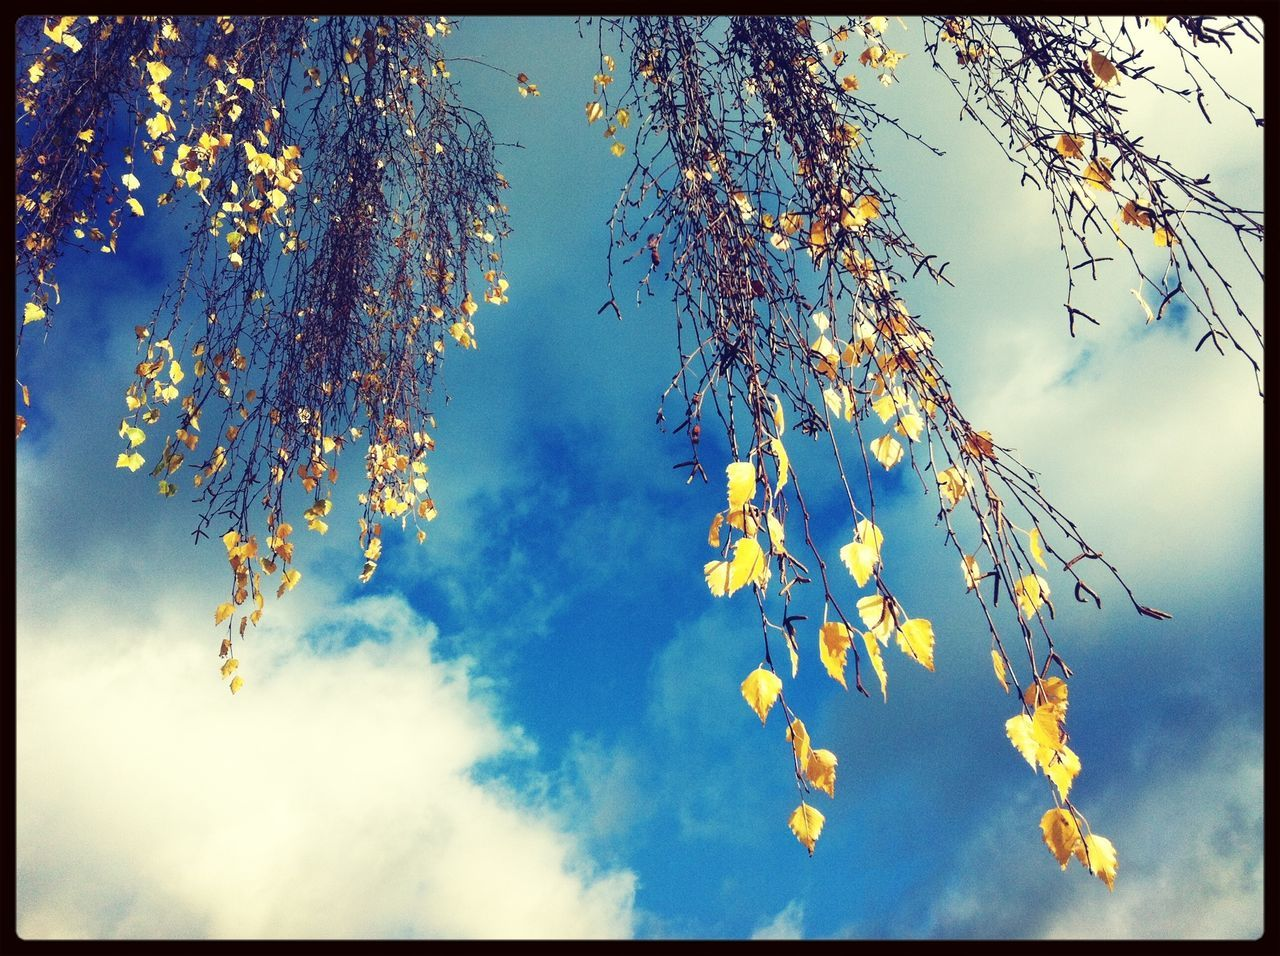 Treetop with autumn leaves against cloudy sky